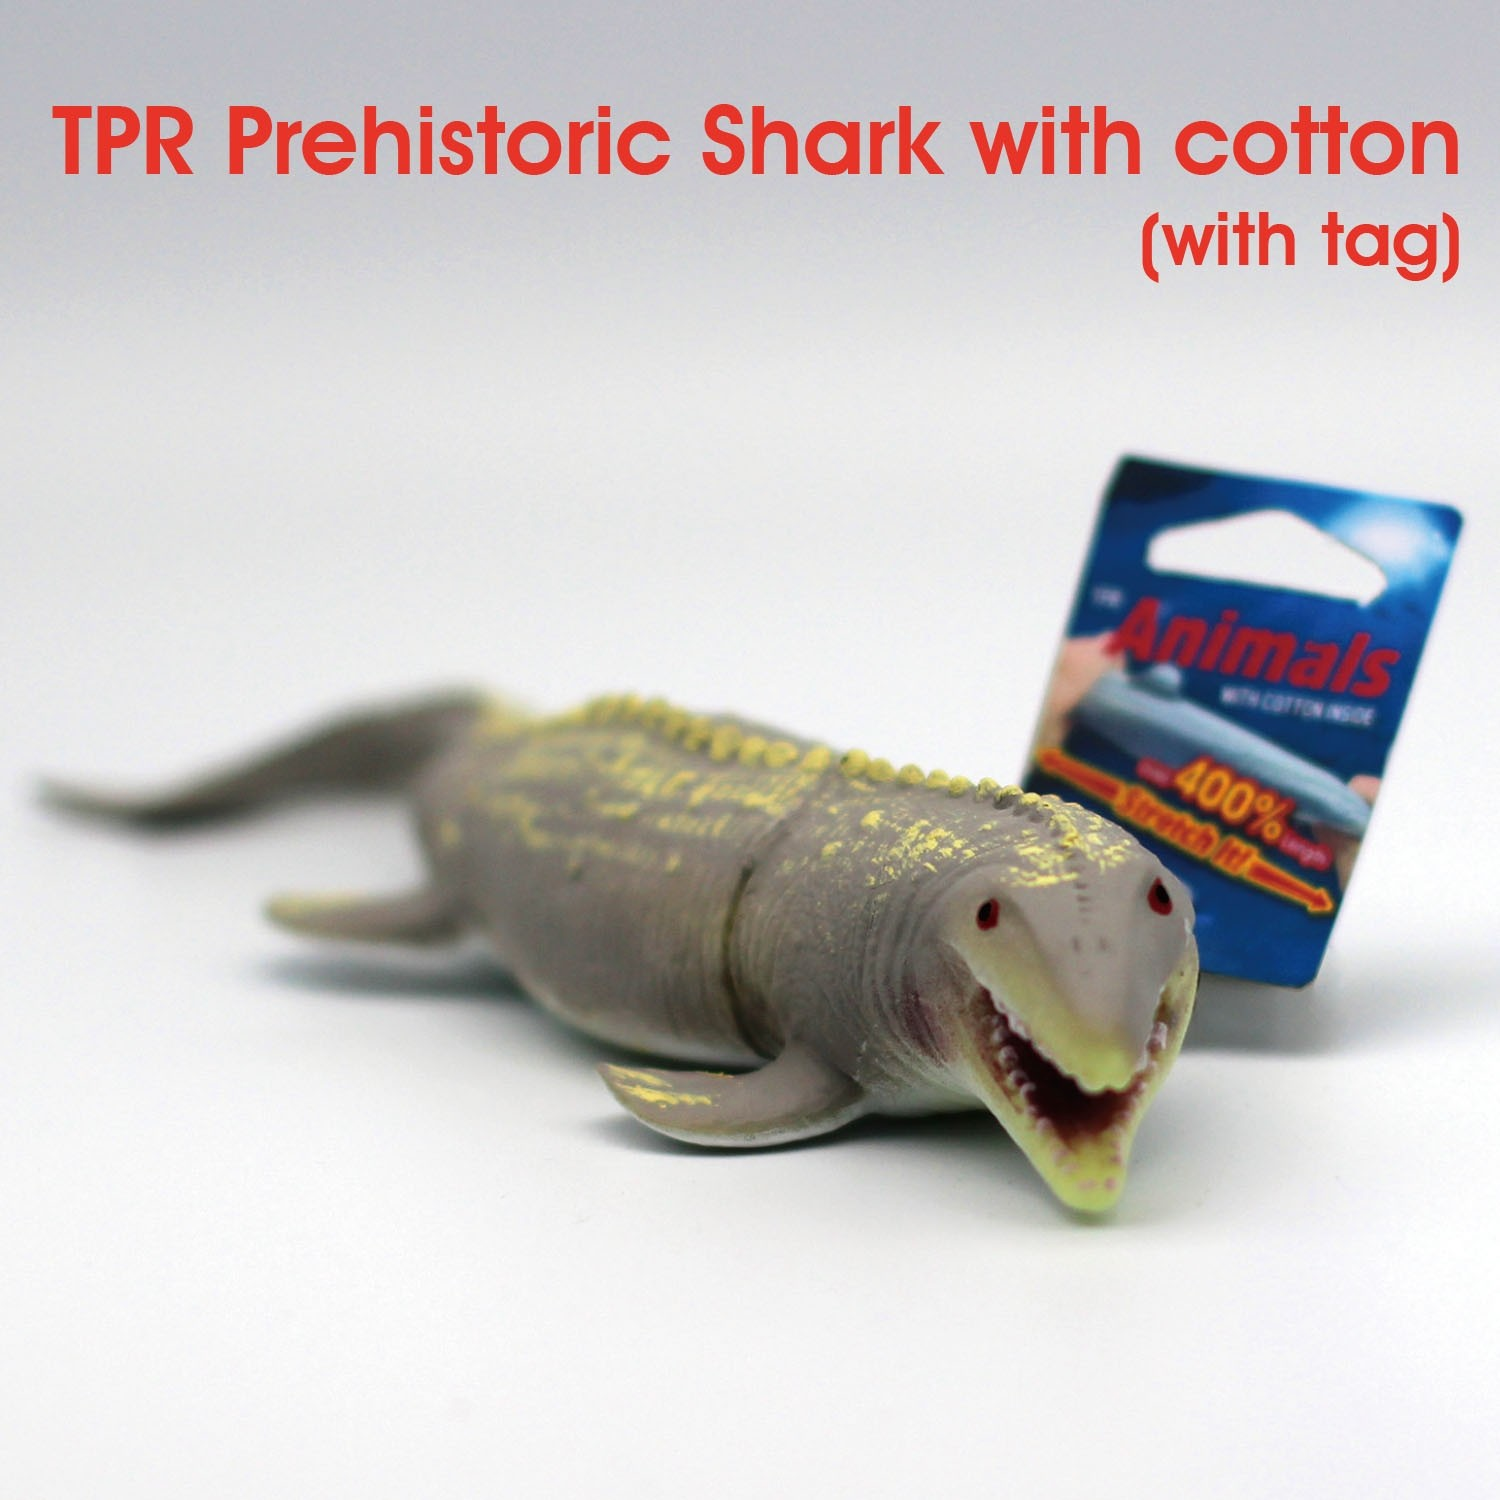 TPR Prehistoric Shark 2 with tag